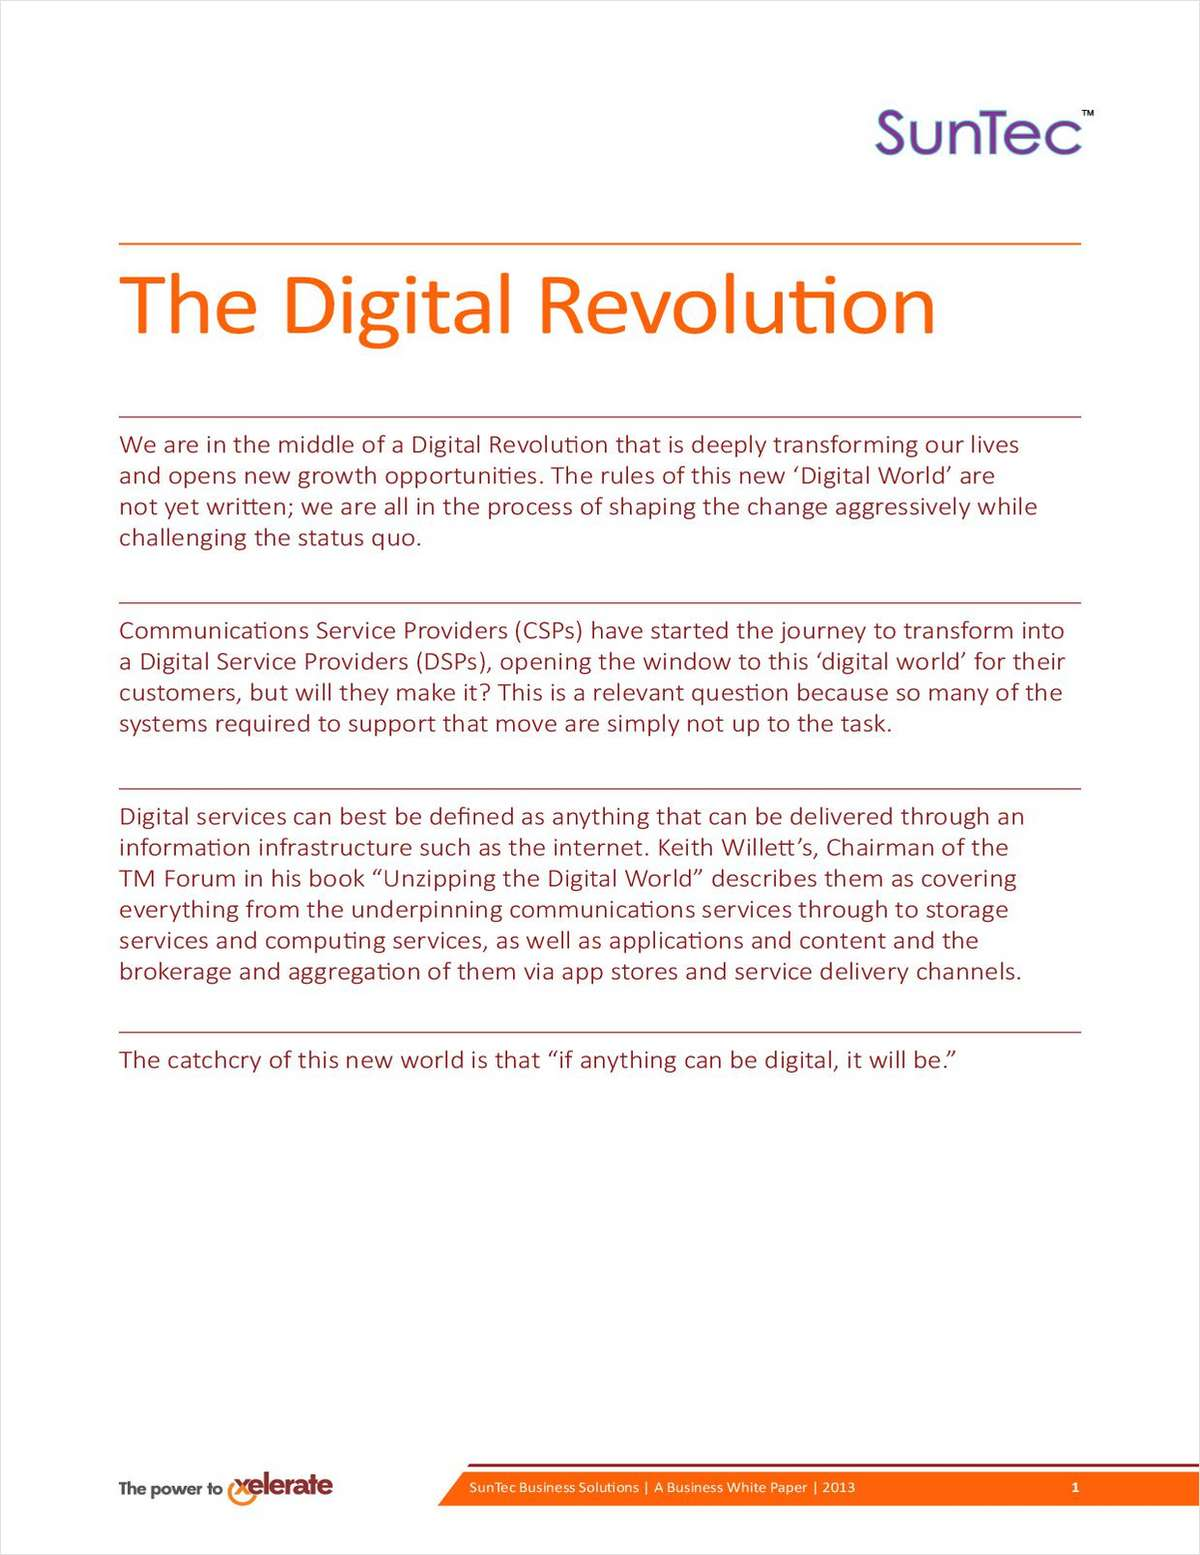 The Digital Revolution for Telecom Operators